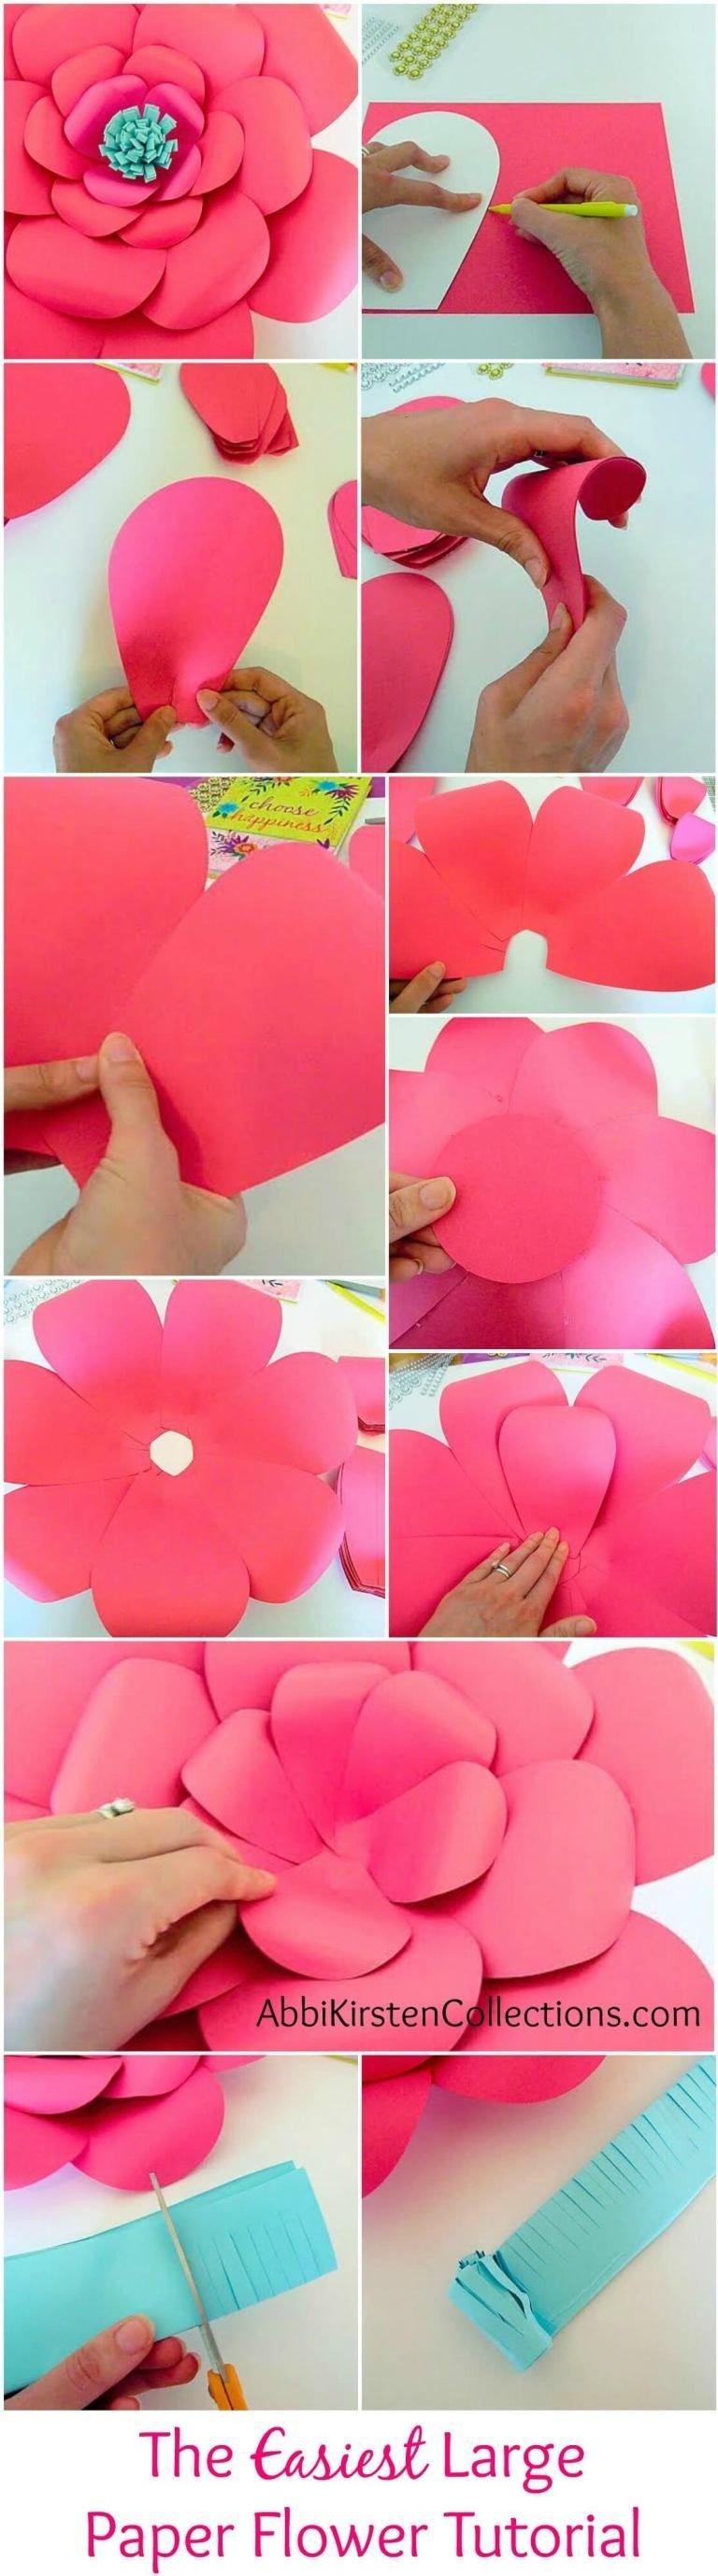 How to Make Large Paper Flowers: Easy DIY Giant Paper Flower #easypaperflowers How to Make Large Paper Flowers: Easy DIY Giant Paper Flower #giantpaperflowers